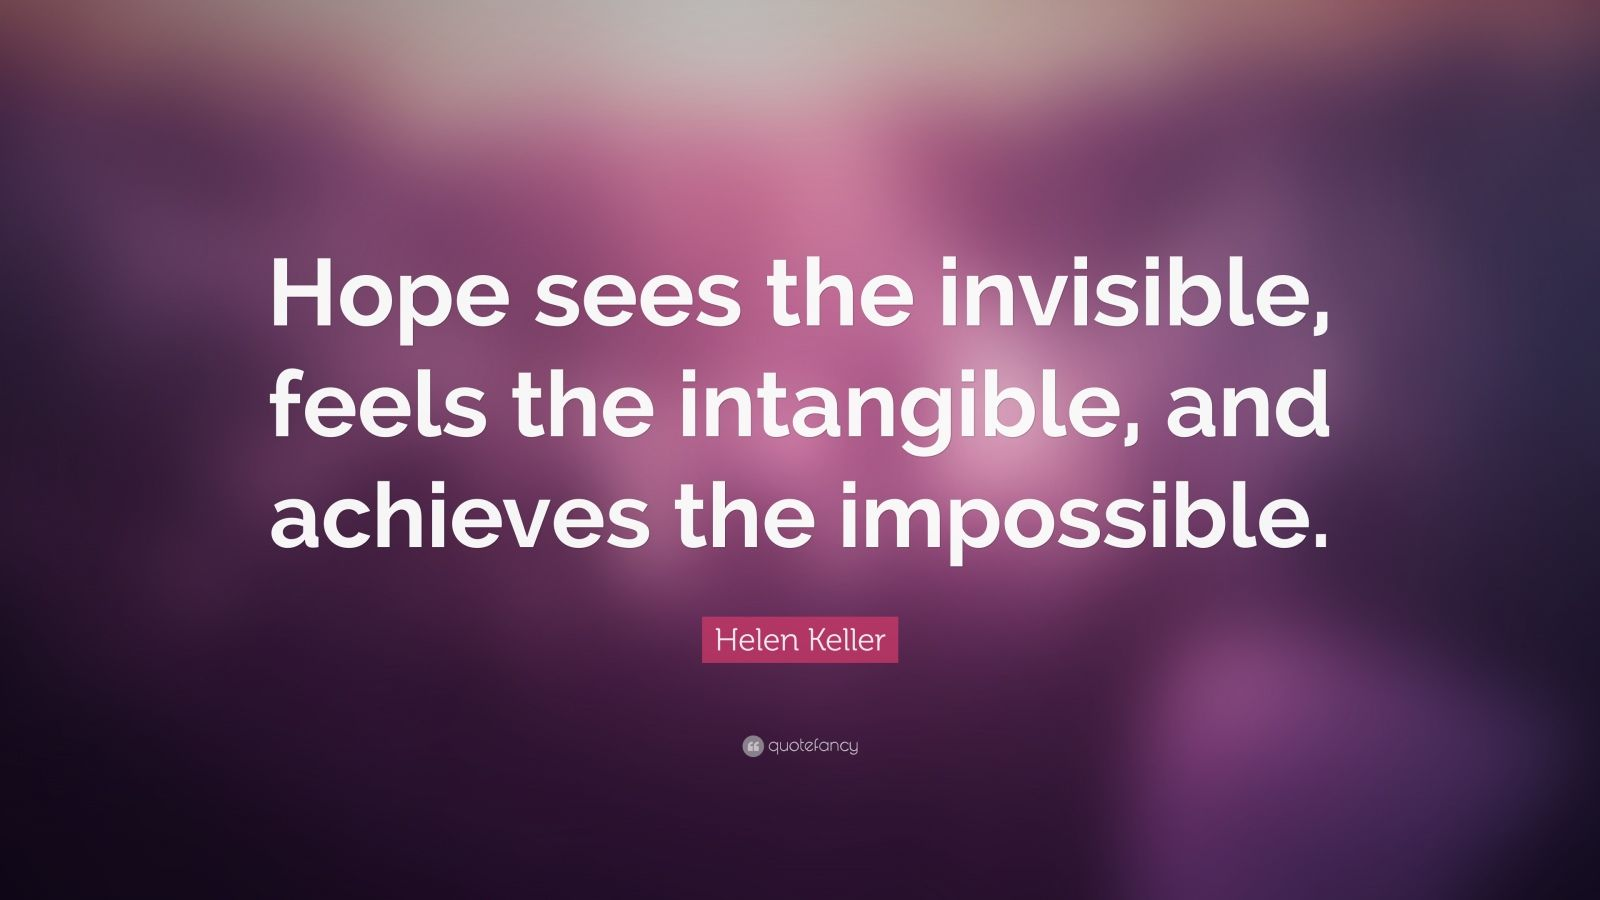 Motivational Life Quotes Wallpapers Helen Keller Quote Hope Sees The Invisible Feels The